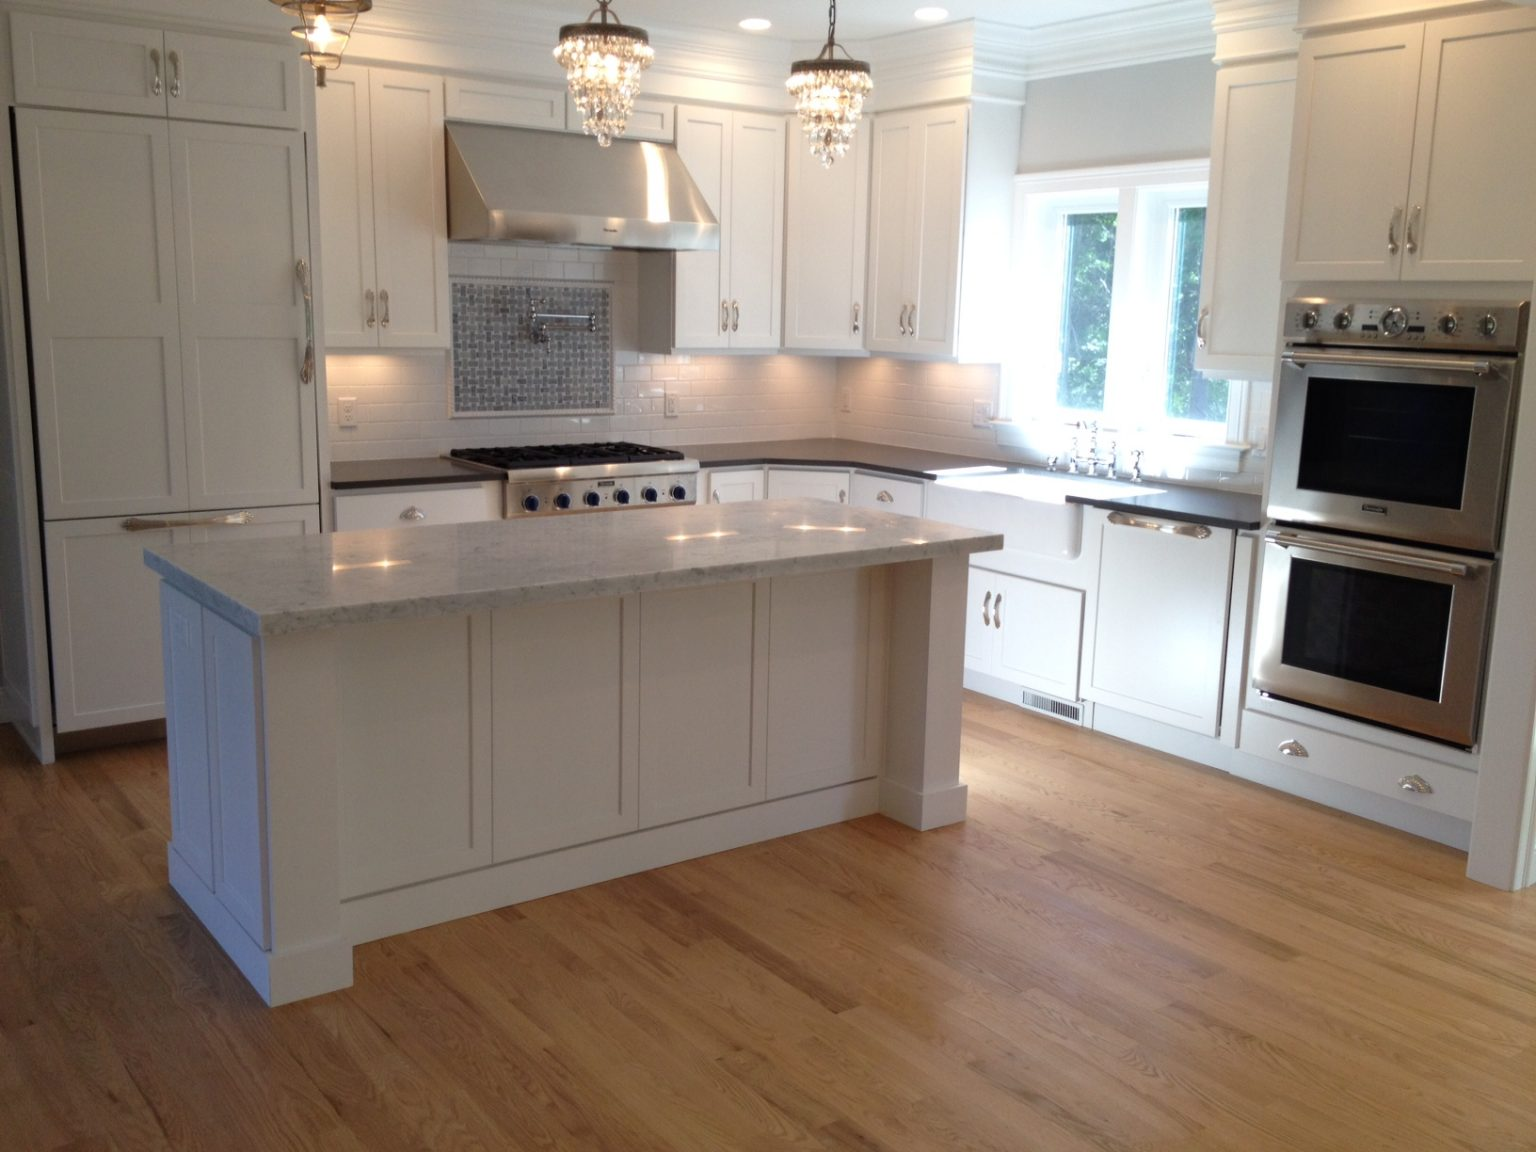 Marble Kitchen Countertops done by Salem Stone Design